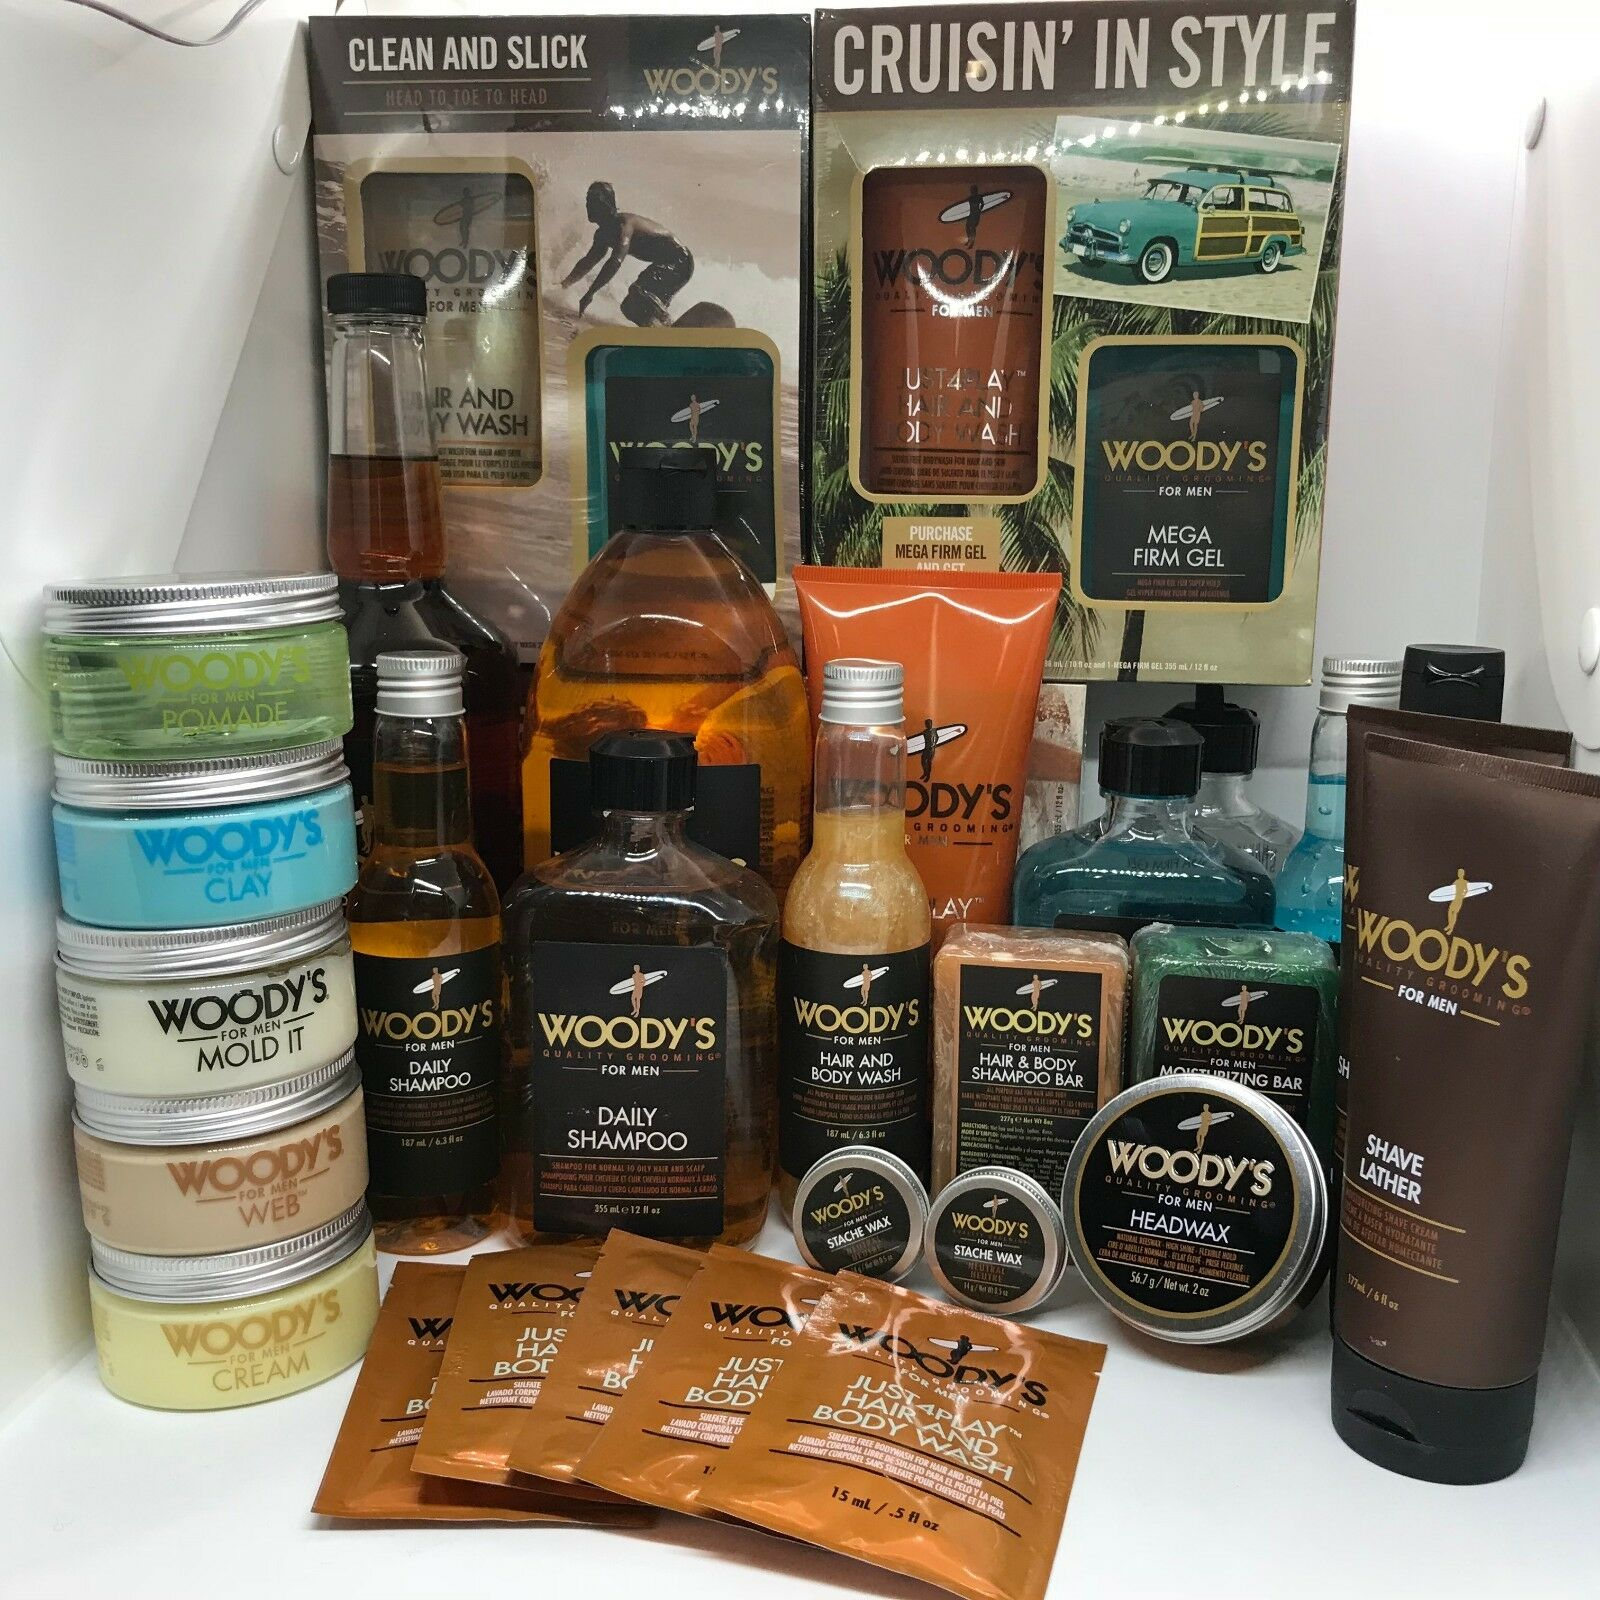 Woody's Quality Grooming for Men! Pick from Hair Gel, Shampo